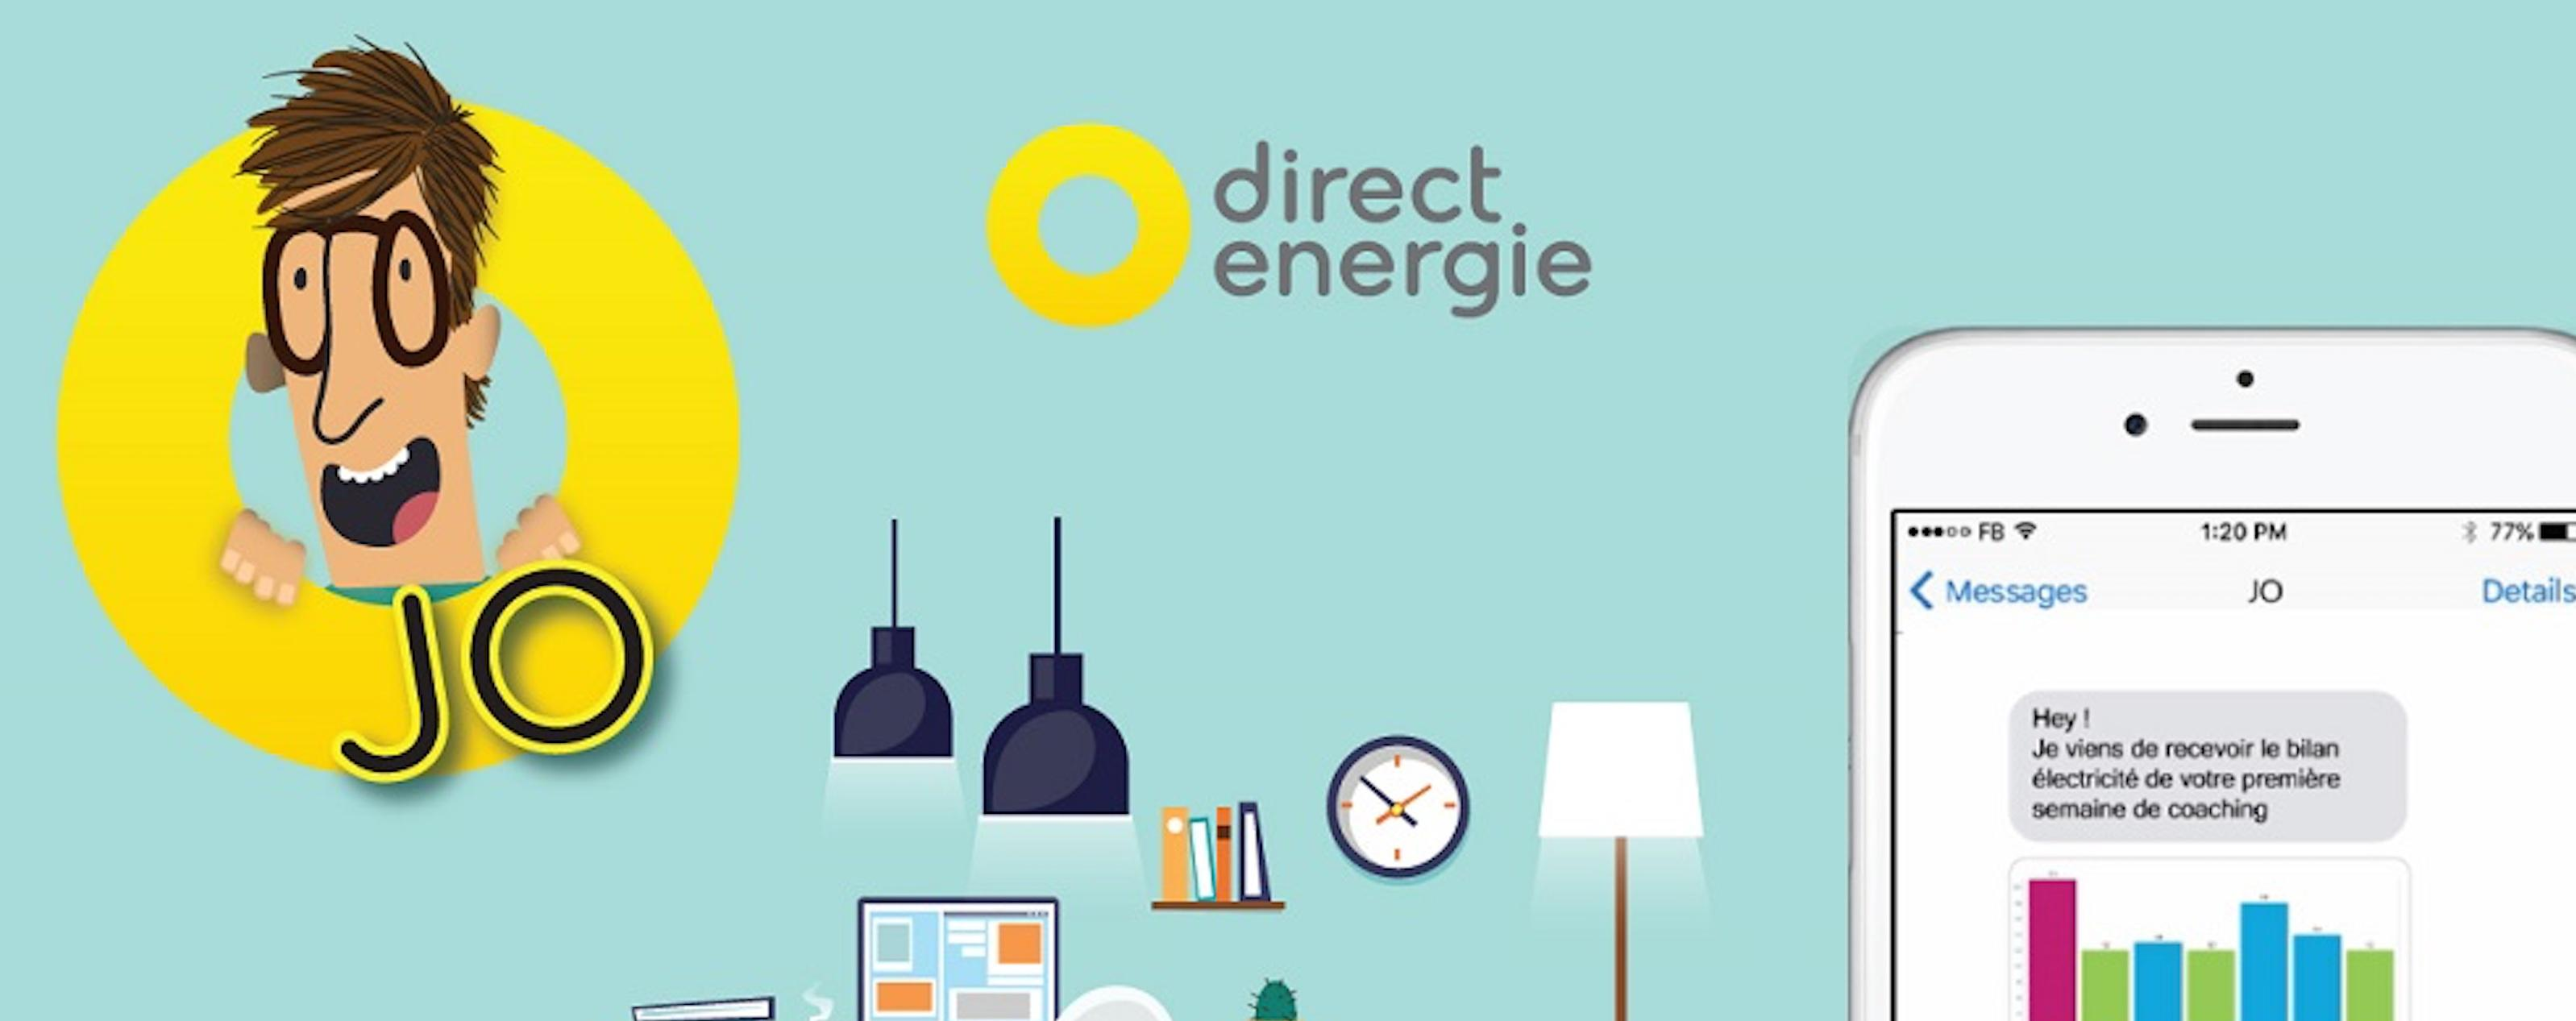 VISEO accompagne Direct Energie sur Jo, son agent conversationnel